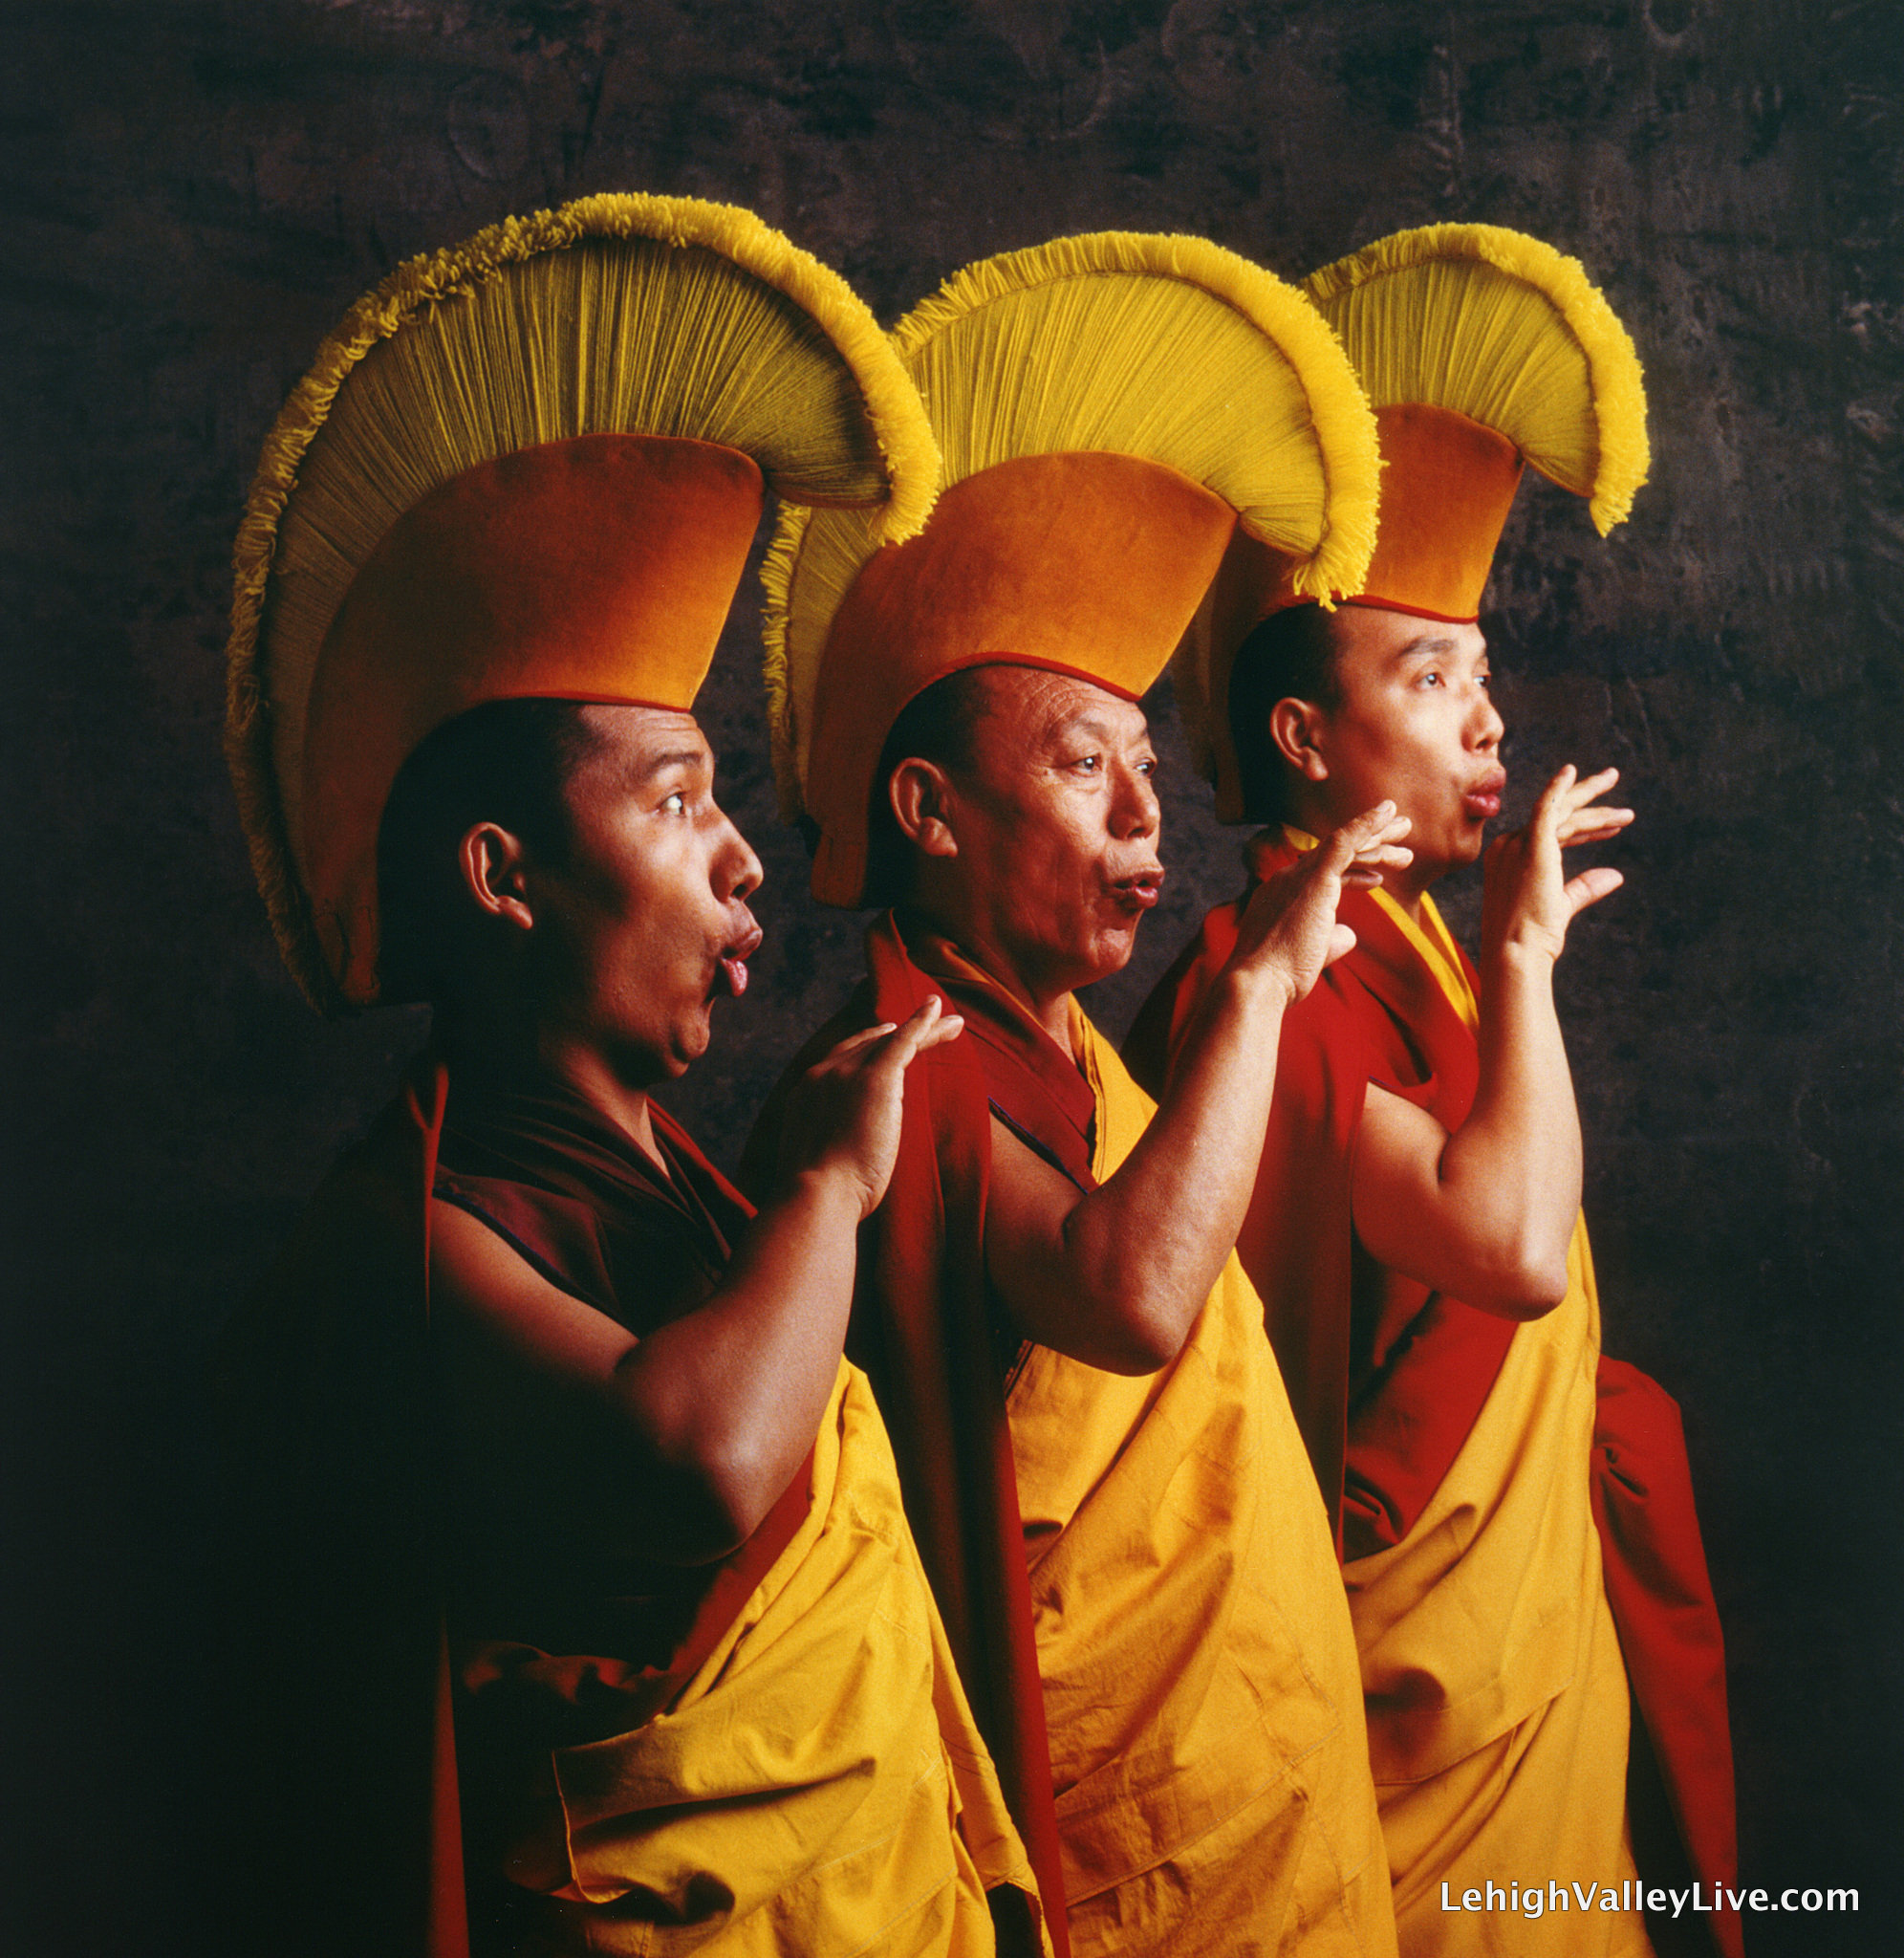 monks-3jpg-7b9098a4eb886b94